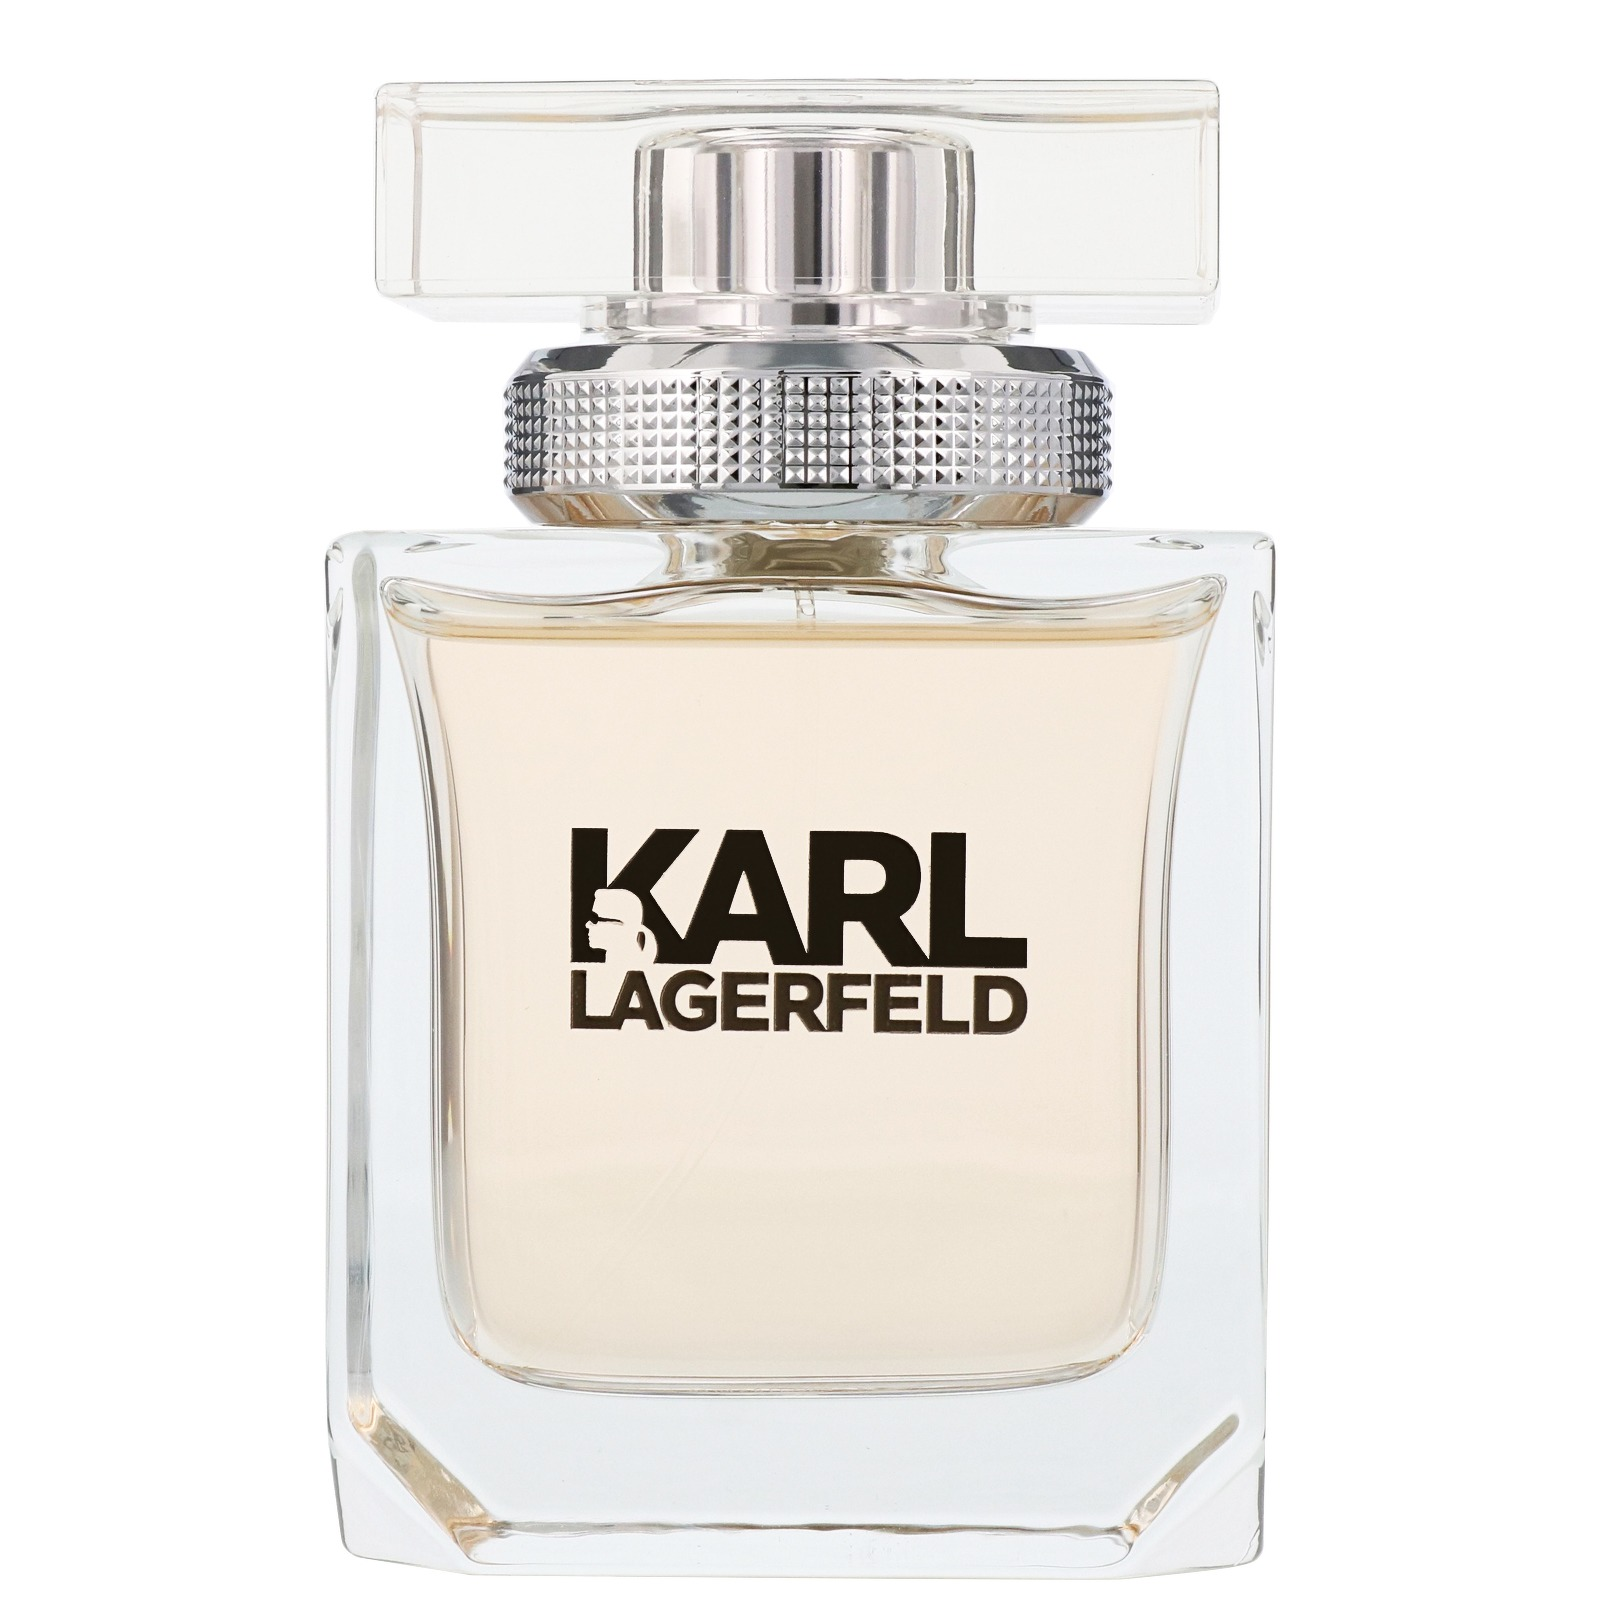 Karl Lagerfeld For Women Eau de Parfum Spray 85ml